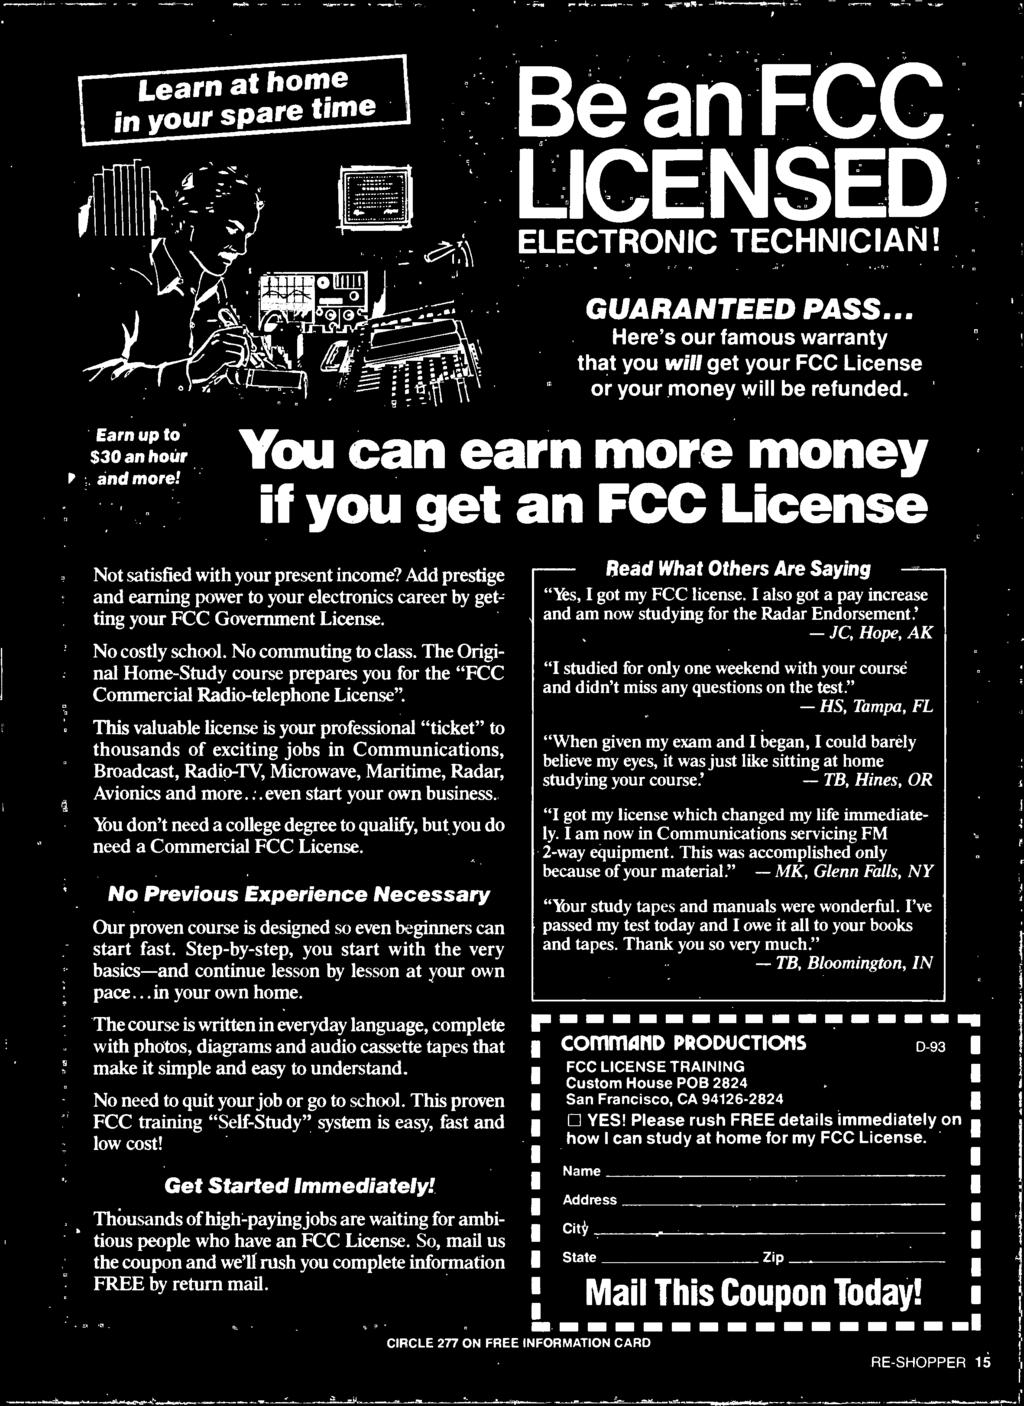 You don't need a college degree to qualify, but you do need a Commercial FCC License. No Previous Experience Necessary Our proven course is designed so even beginners can start fast.